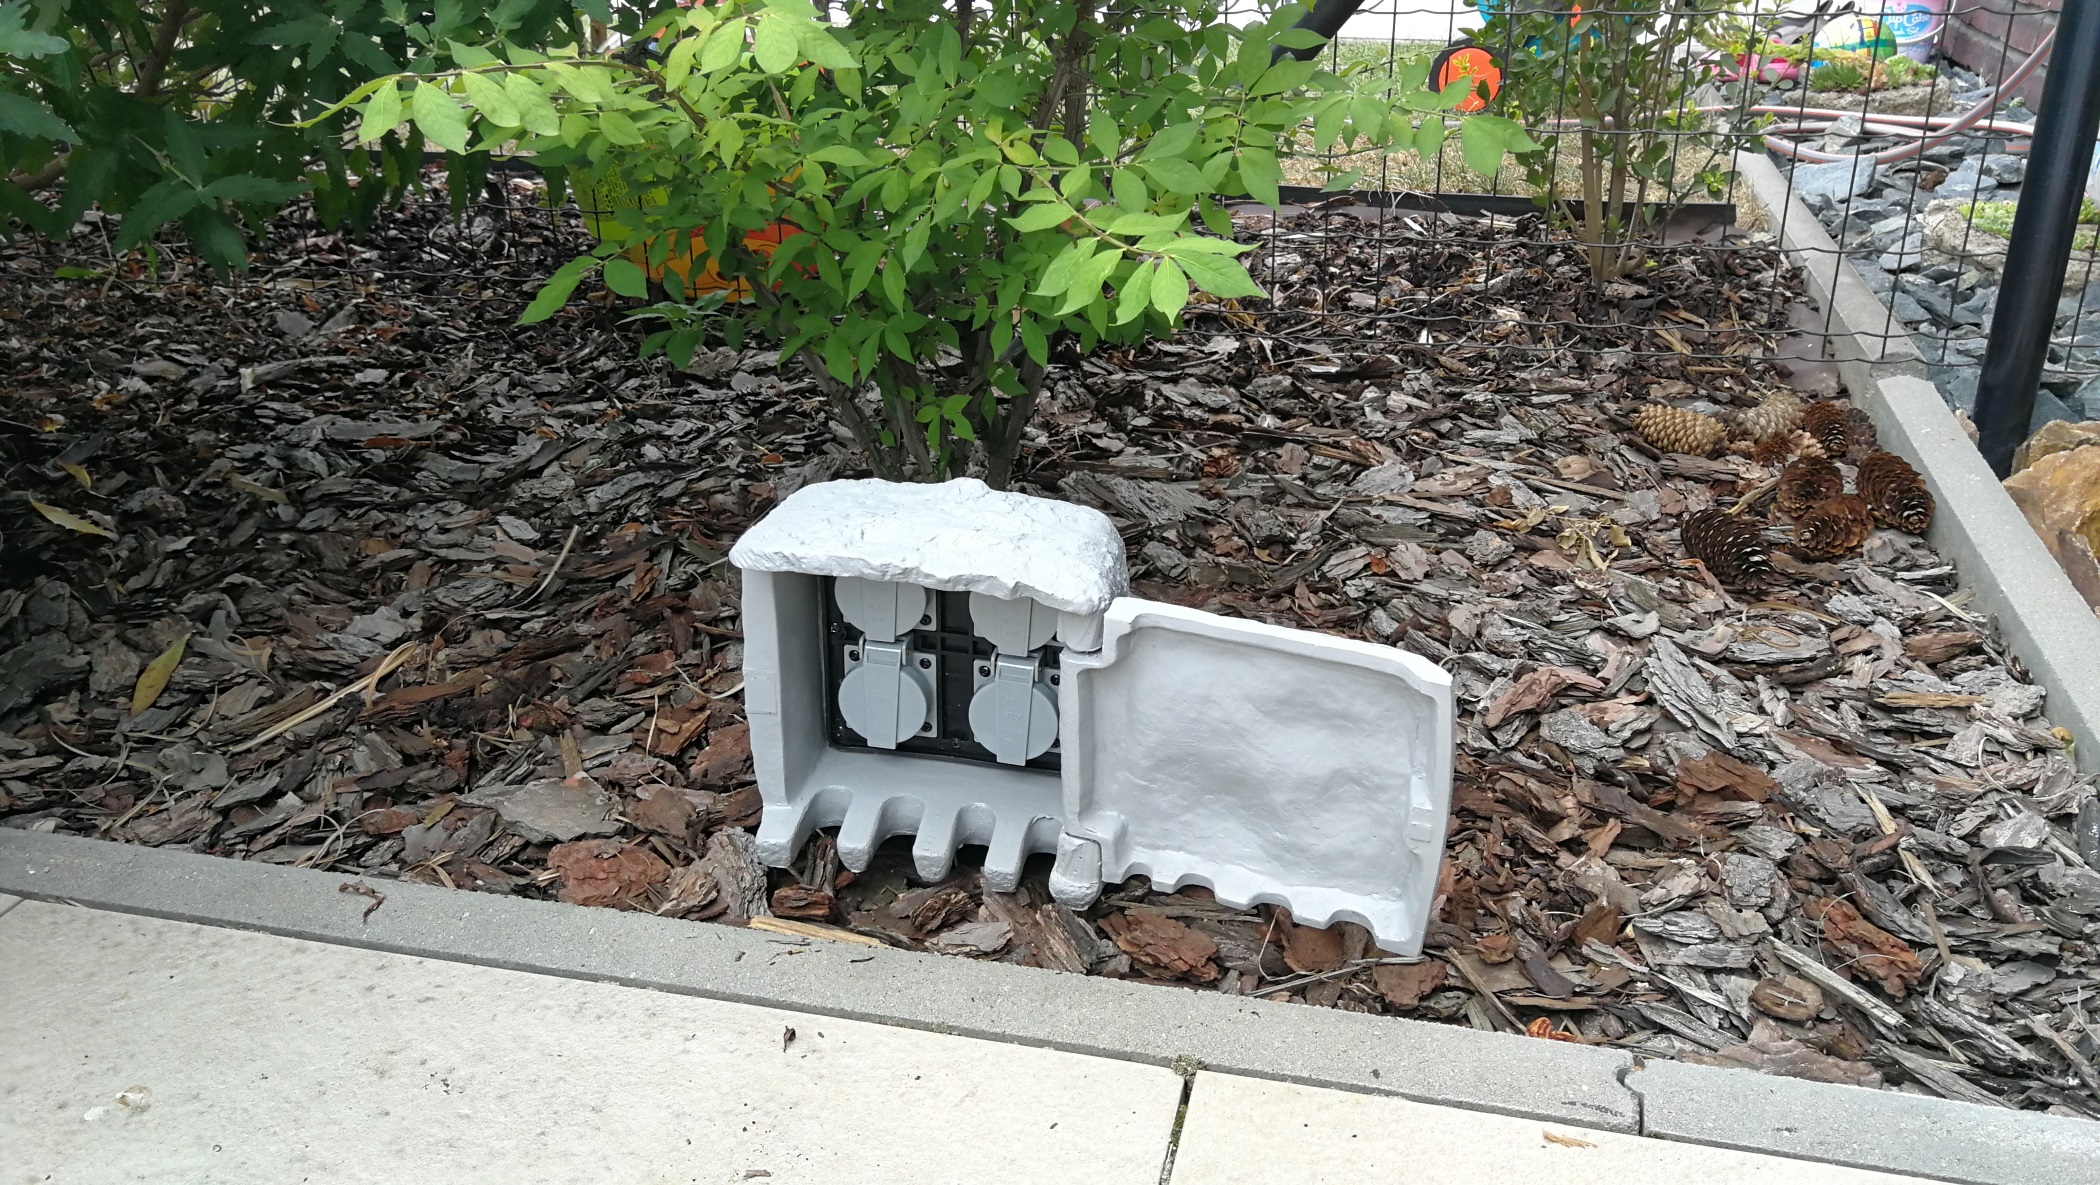 Outdoor power outlet